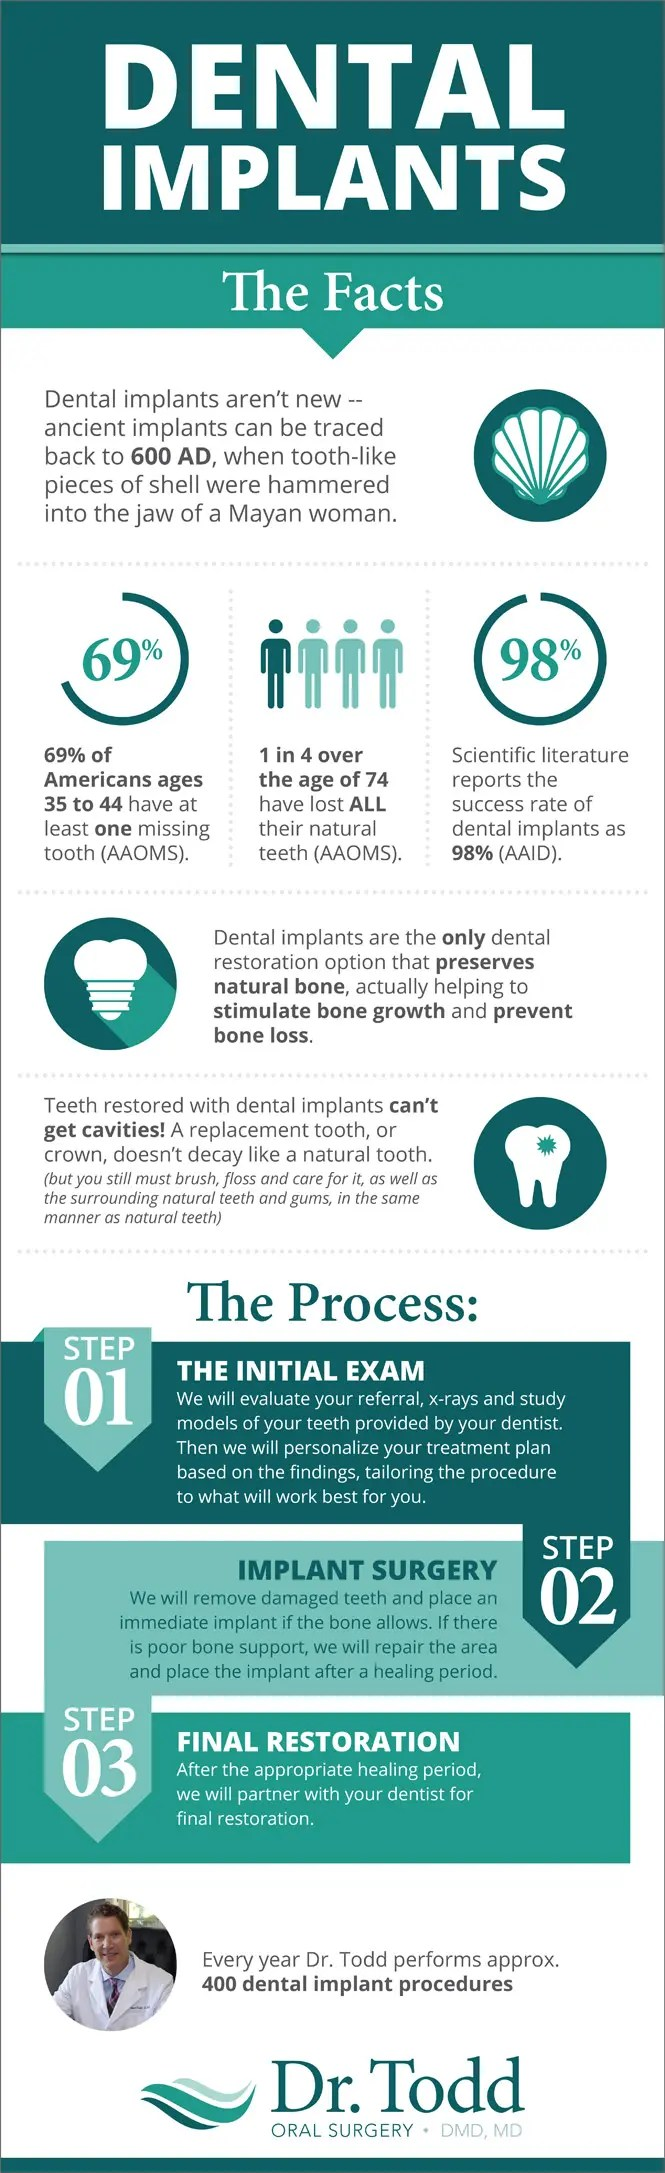 Dr Todd Dental Implants info graphic